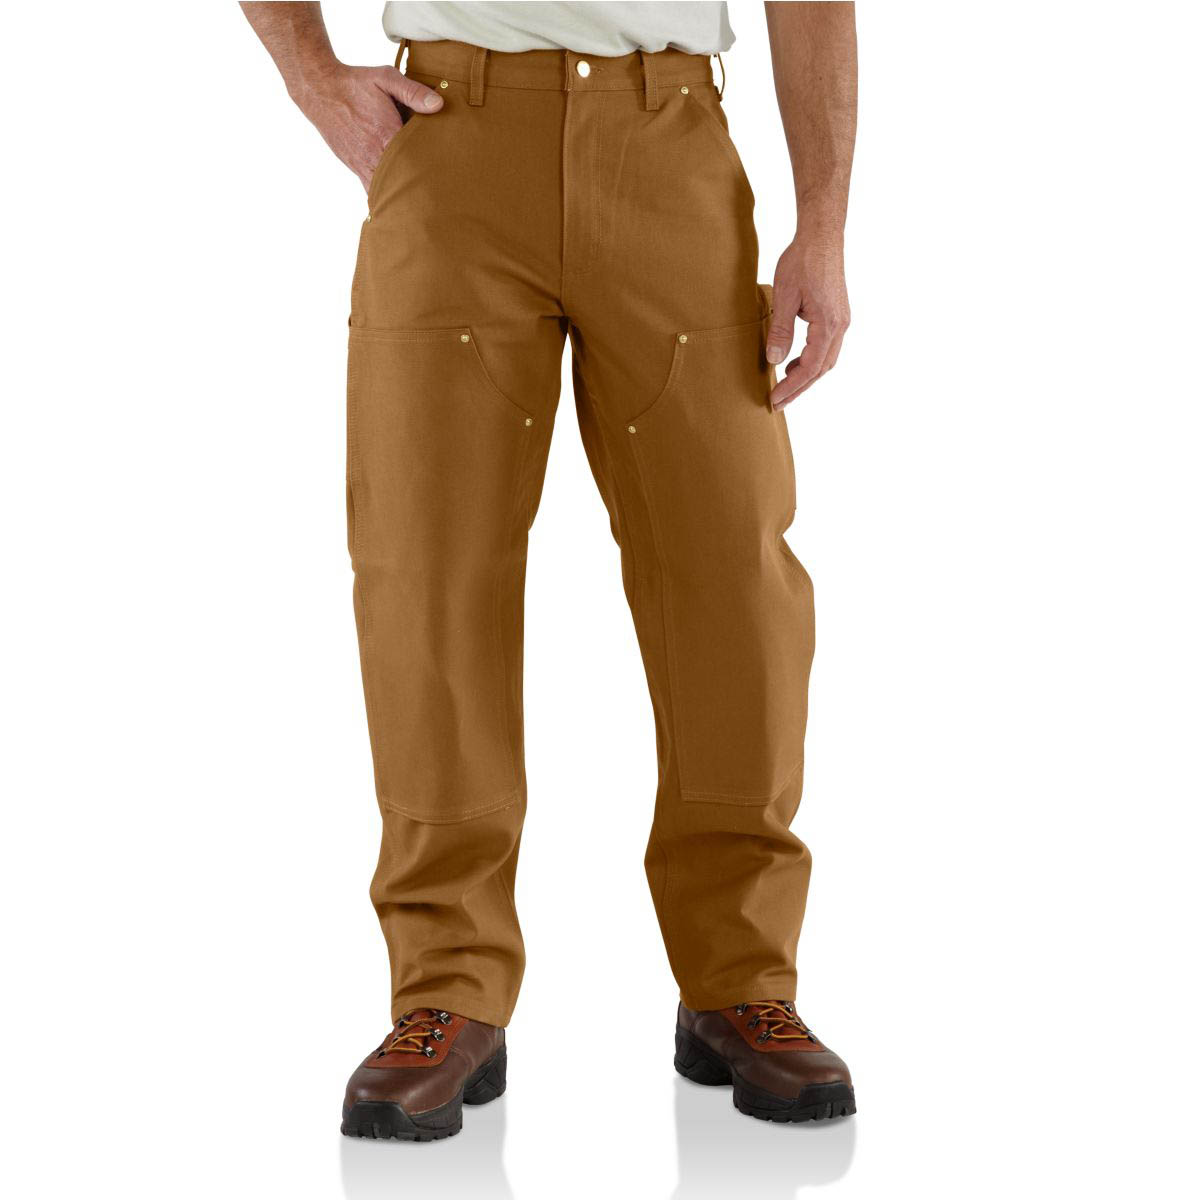 Carhartt FR Work Pant 36x34 ARC 2 Has Safety Trim At Ankles